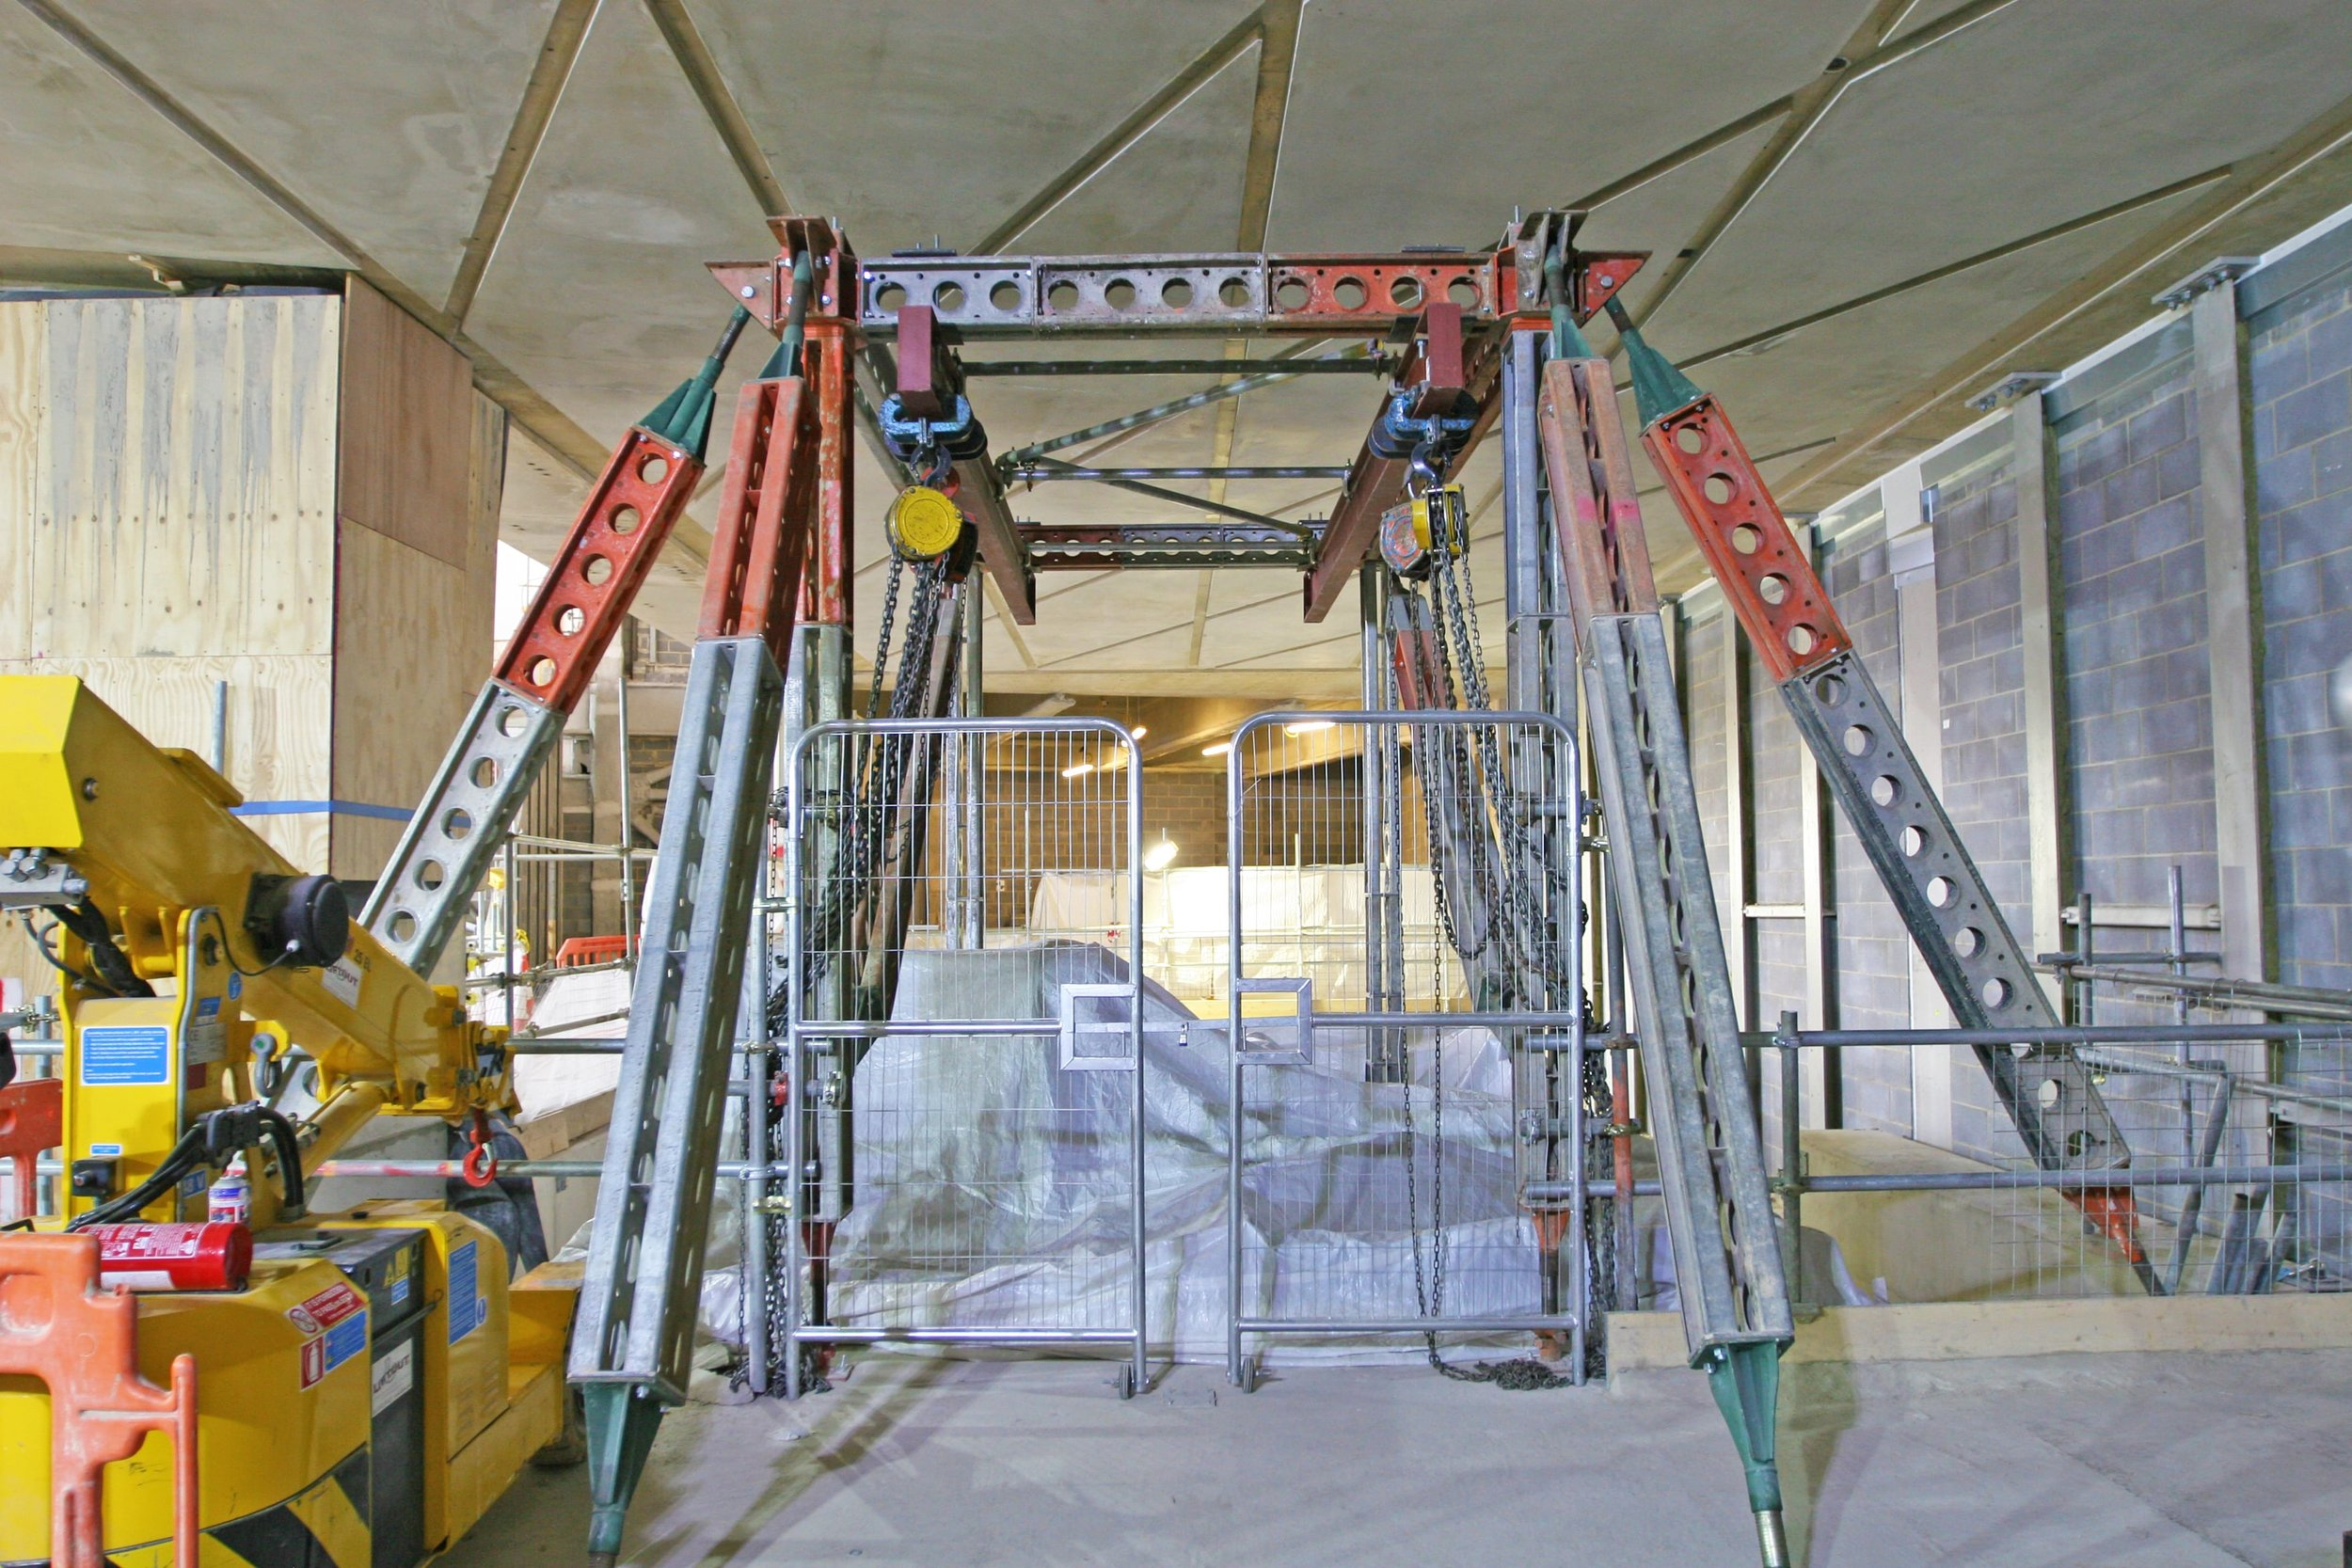 Lifting frame using RMD SuperSlim soldiers for the installation of escalators at Crossrail, Farringdon